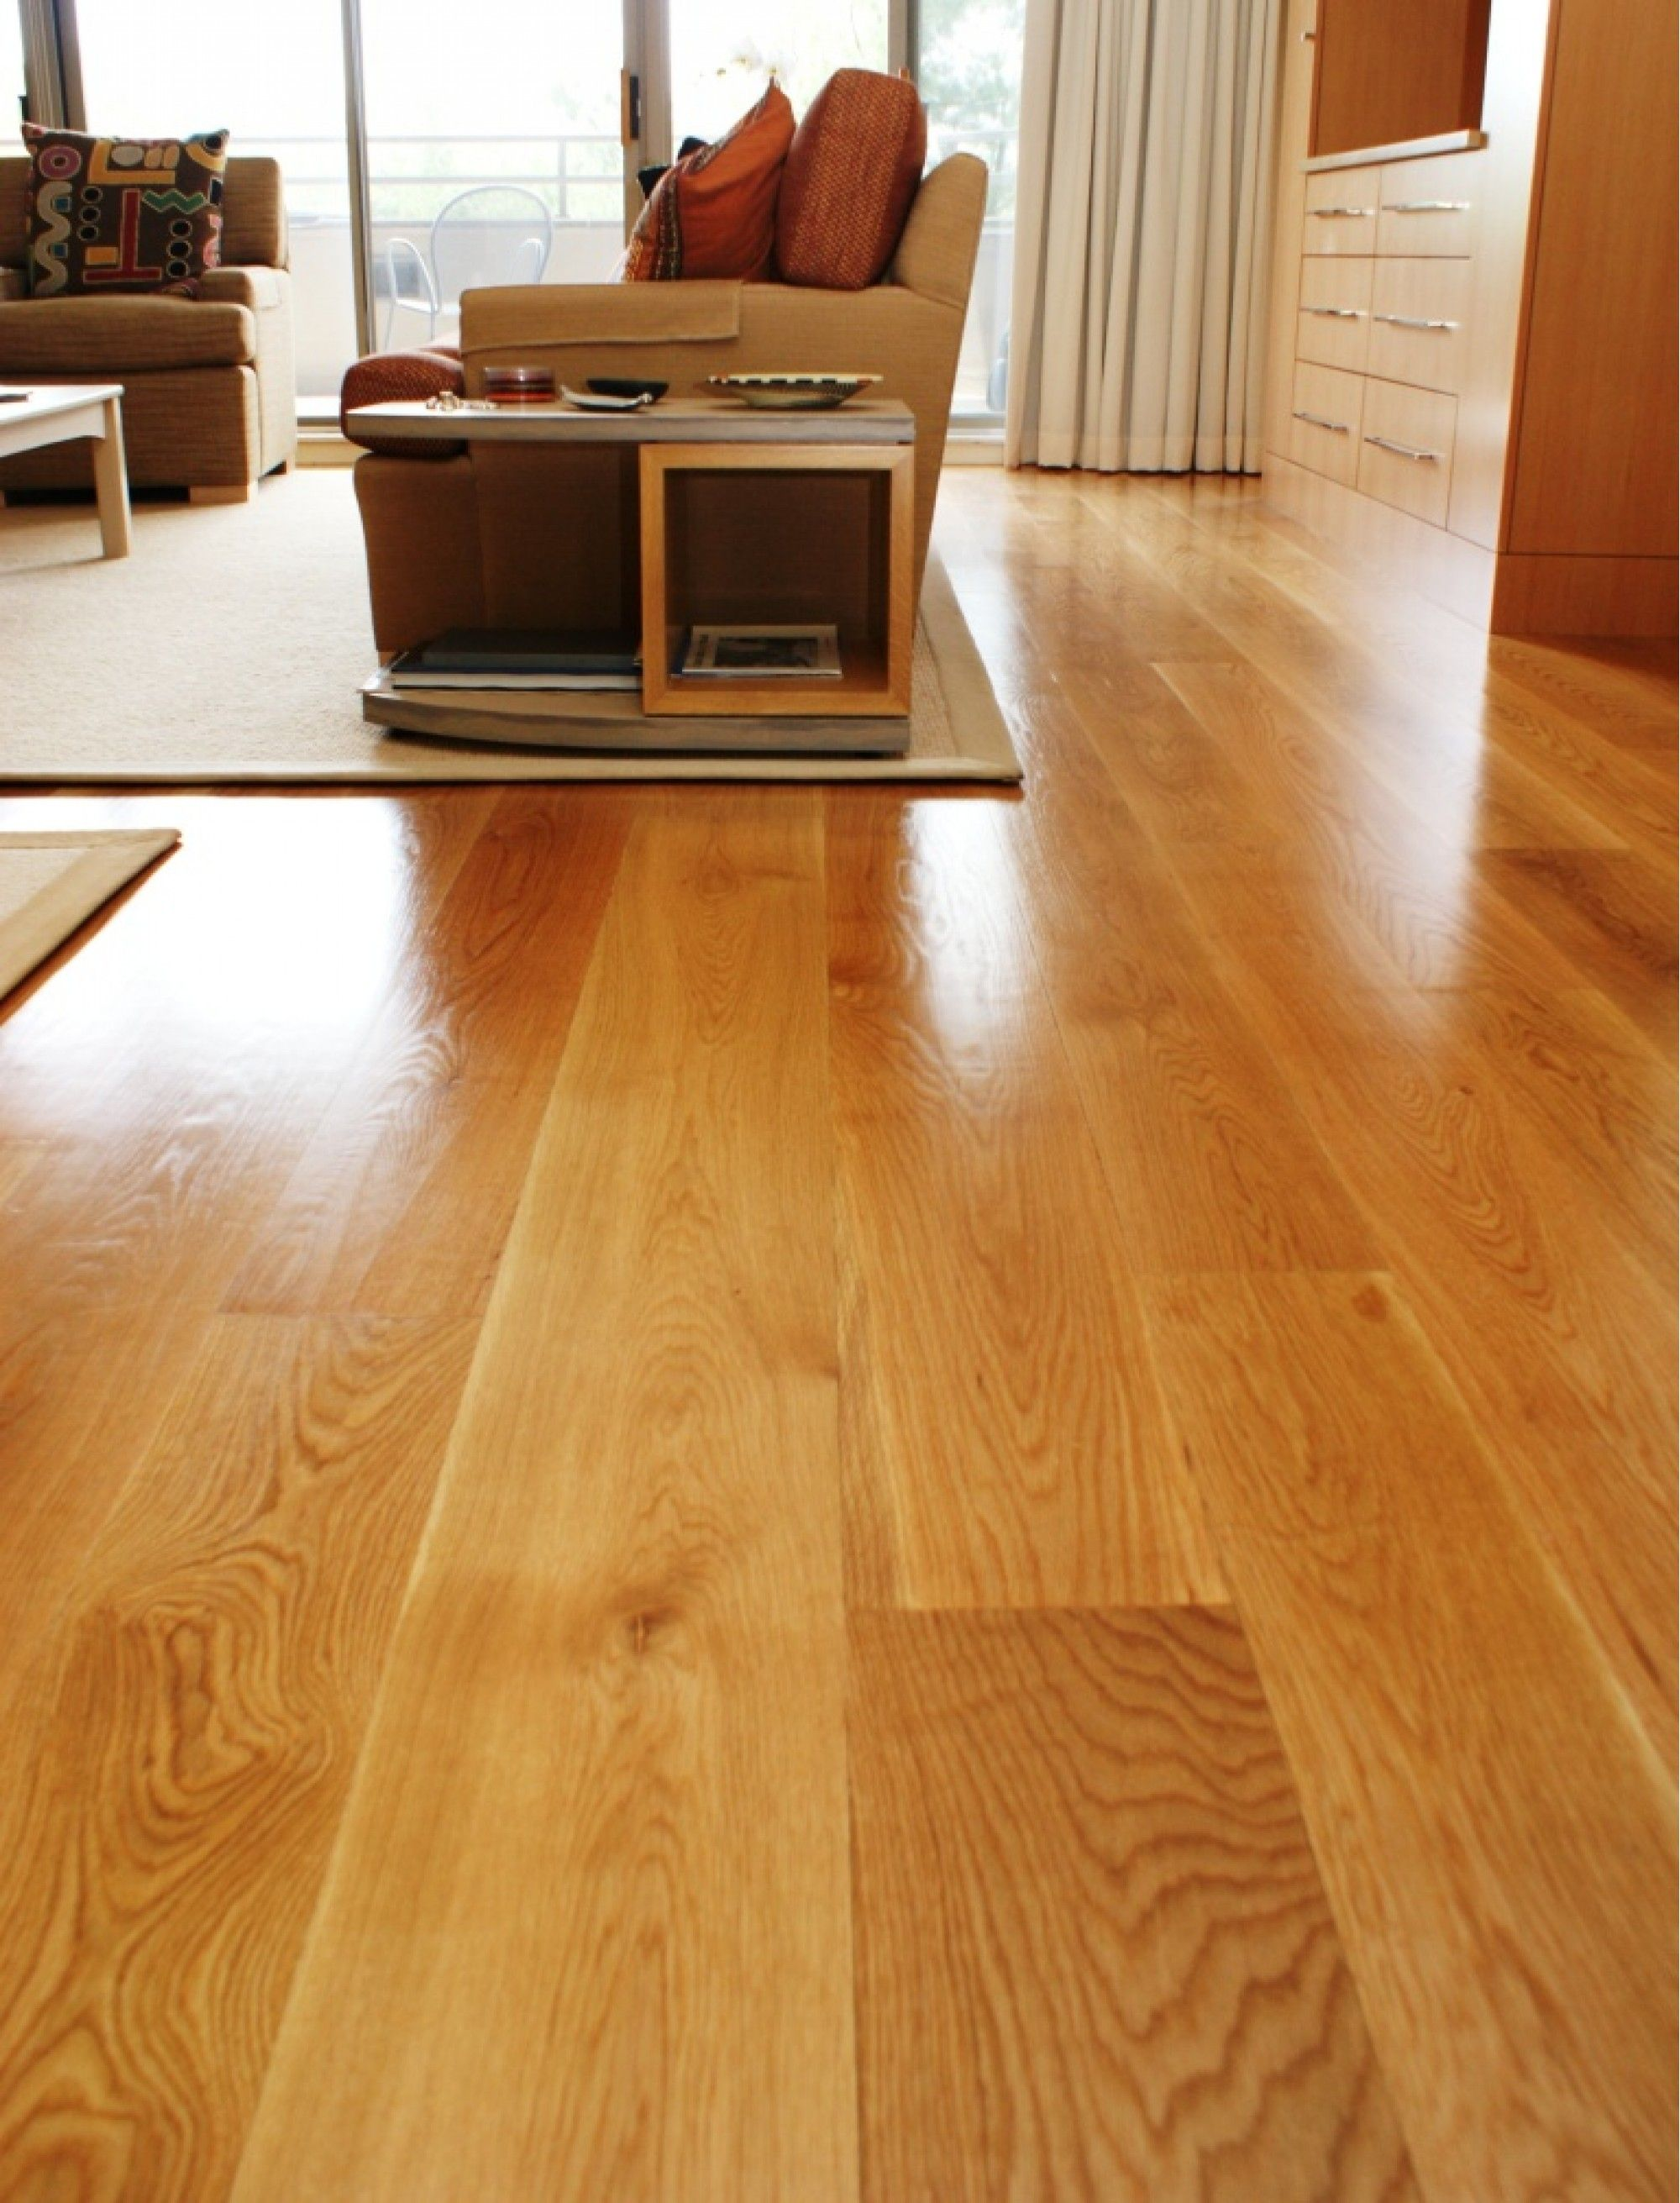 Wide Plank White Oak Quercus Alba Our Best Selling Wood Species We Offer All Grad Wide Plank Hardwood Floors Wide Plank White Oak Floors Wide Plank Flooring